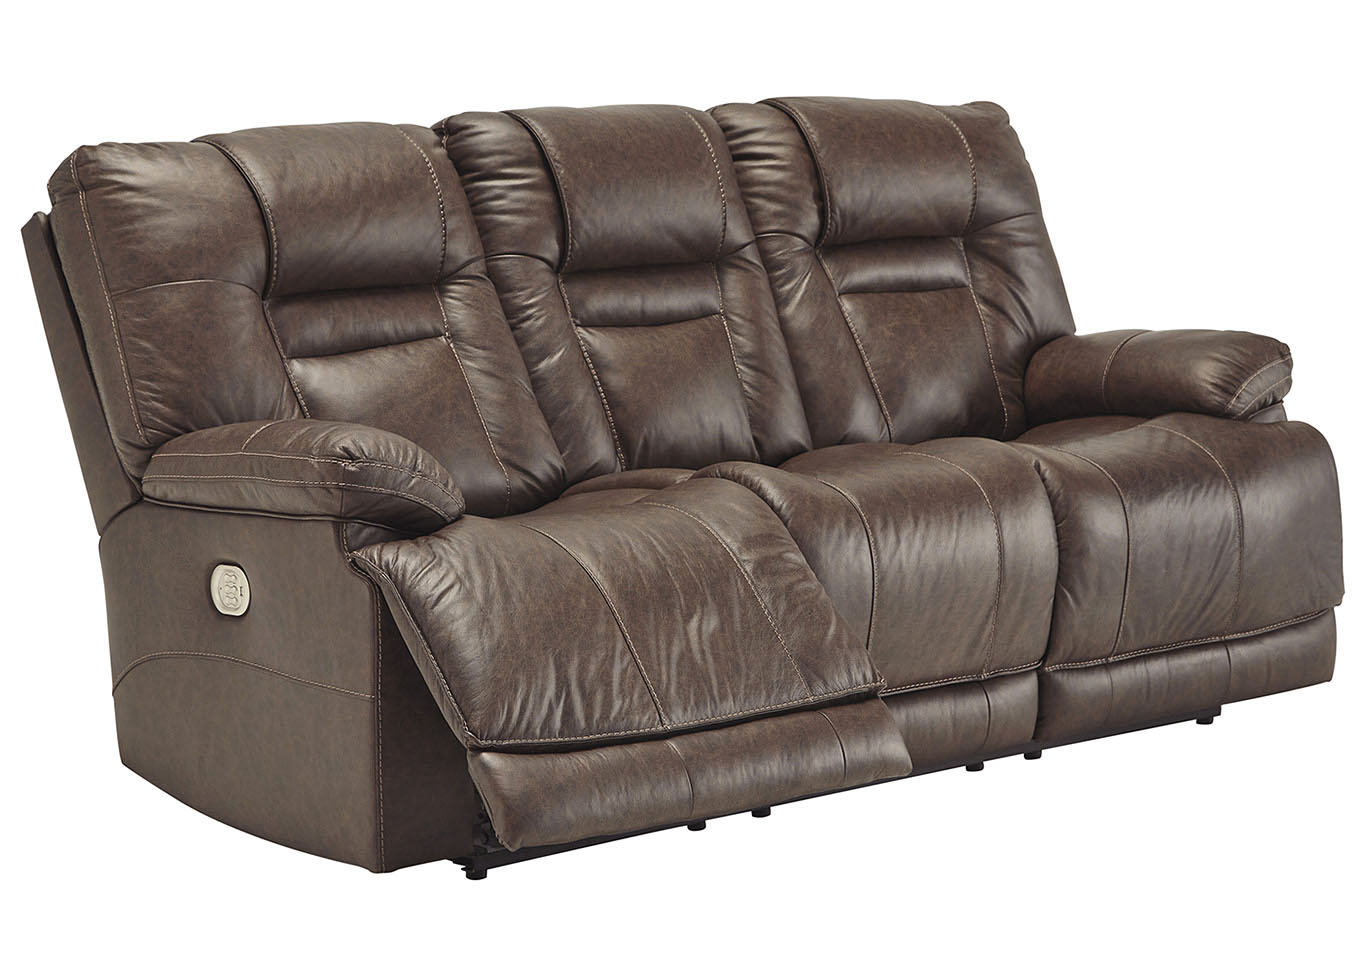 Wurstrow Umber Power Reclining Sofa w/Adjustable Headrest,Signature Design By Ashley